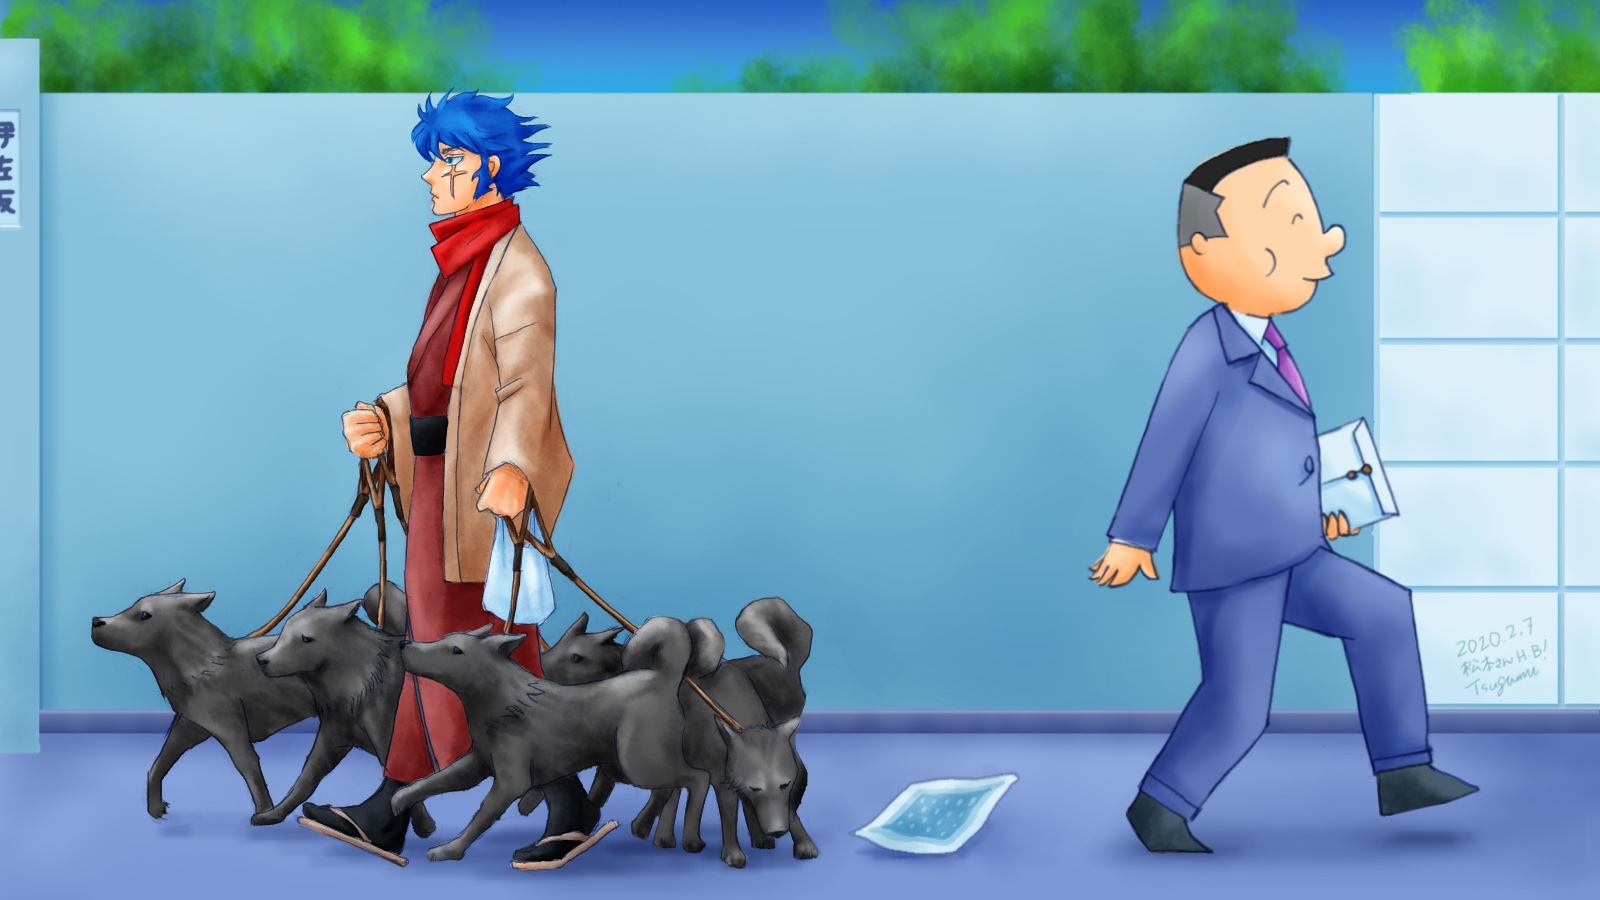 Cale / Anubisu walking a bunch of dogs